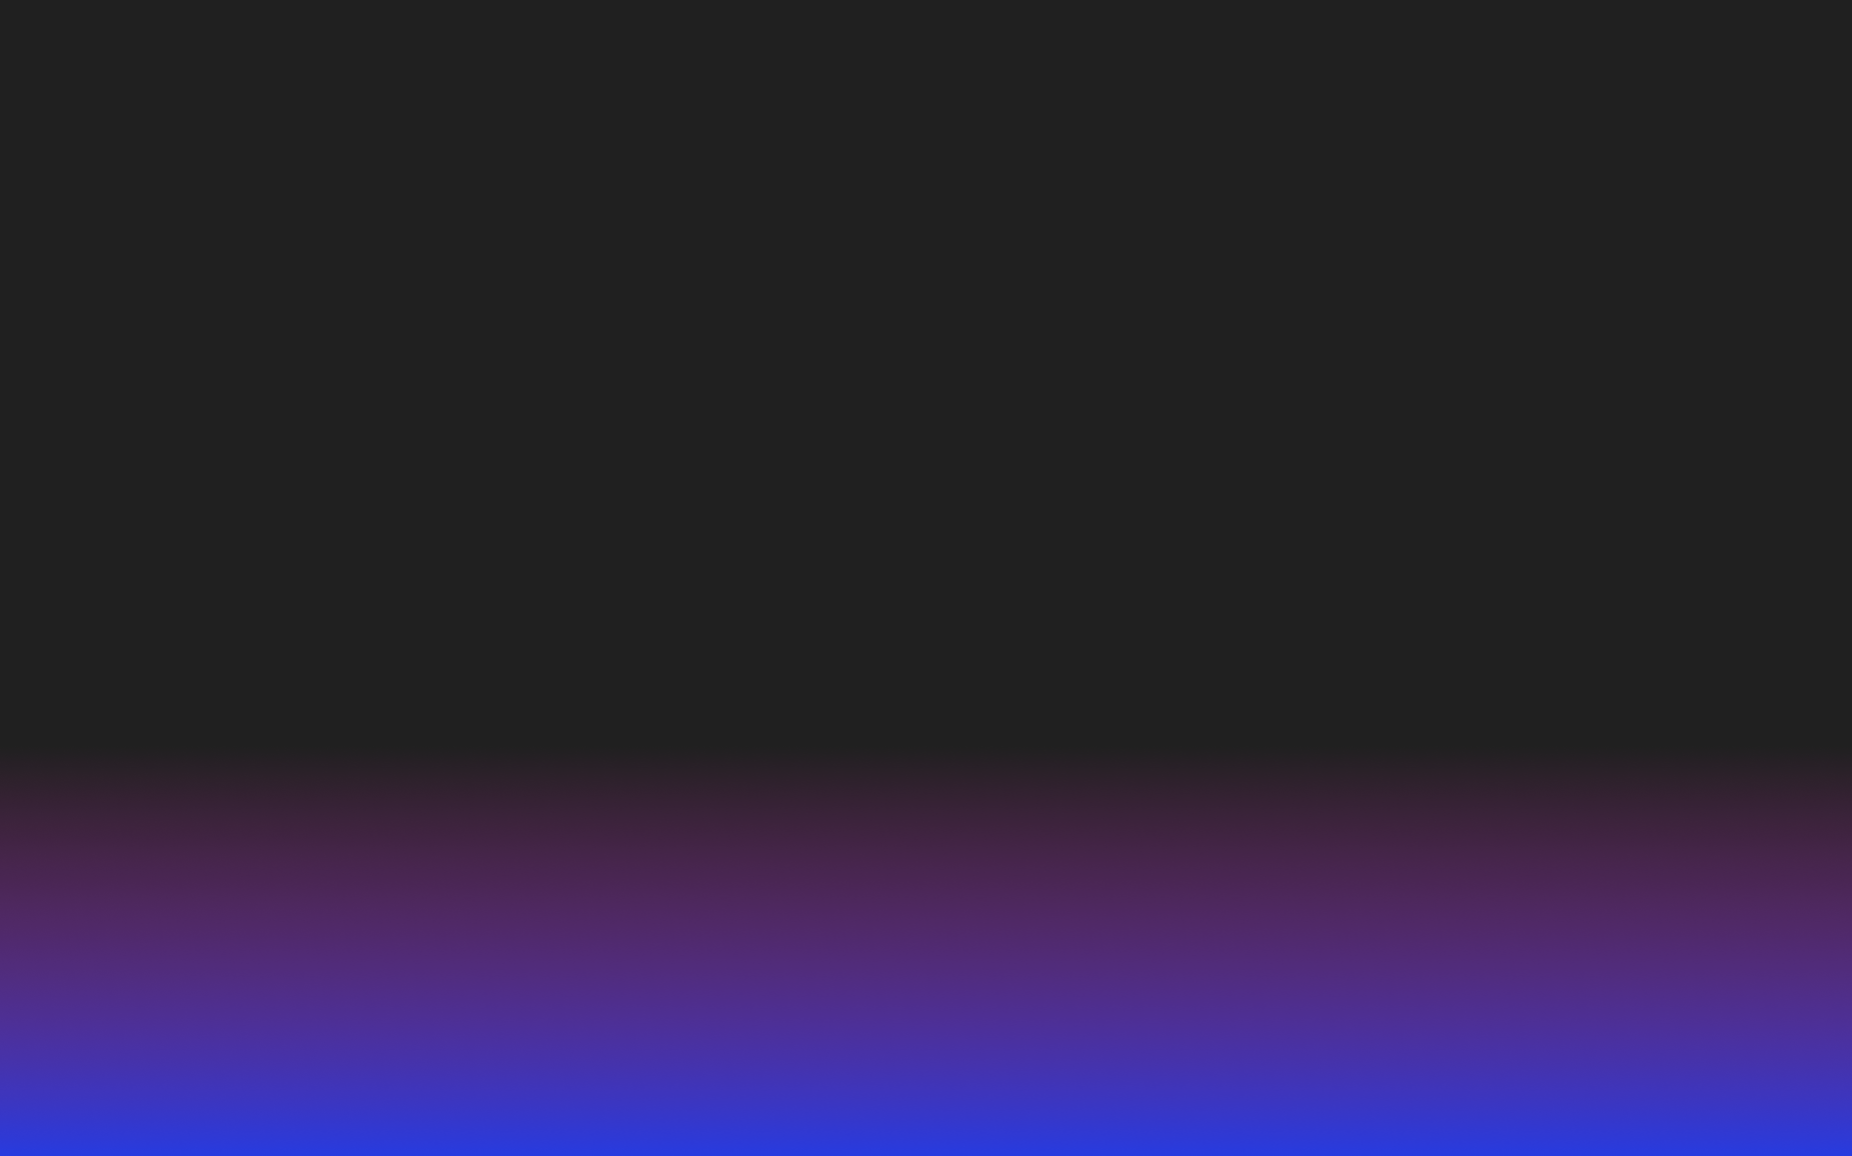 background gradient, blue to purple to pink to black